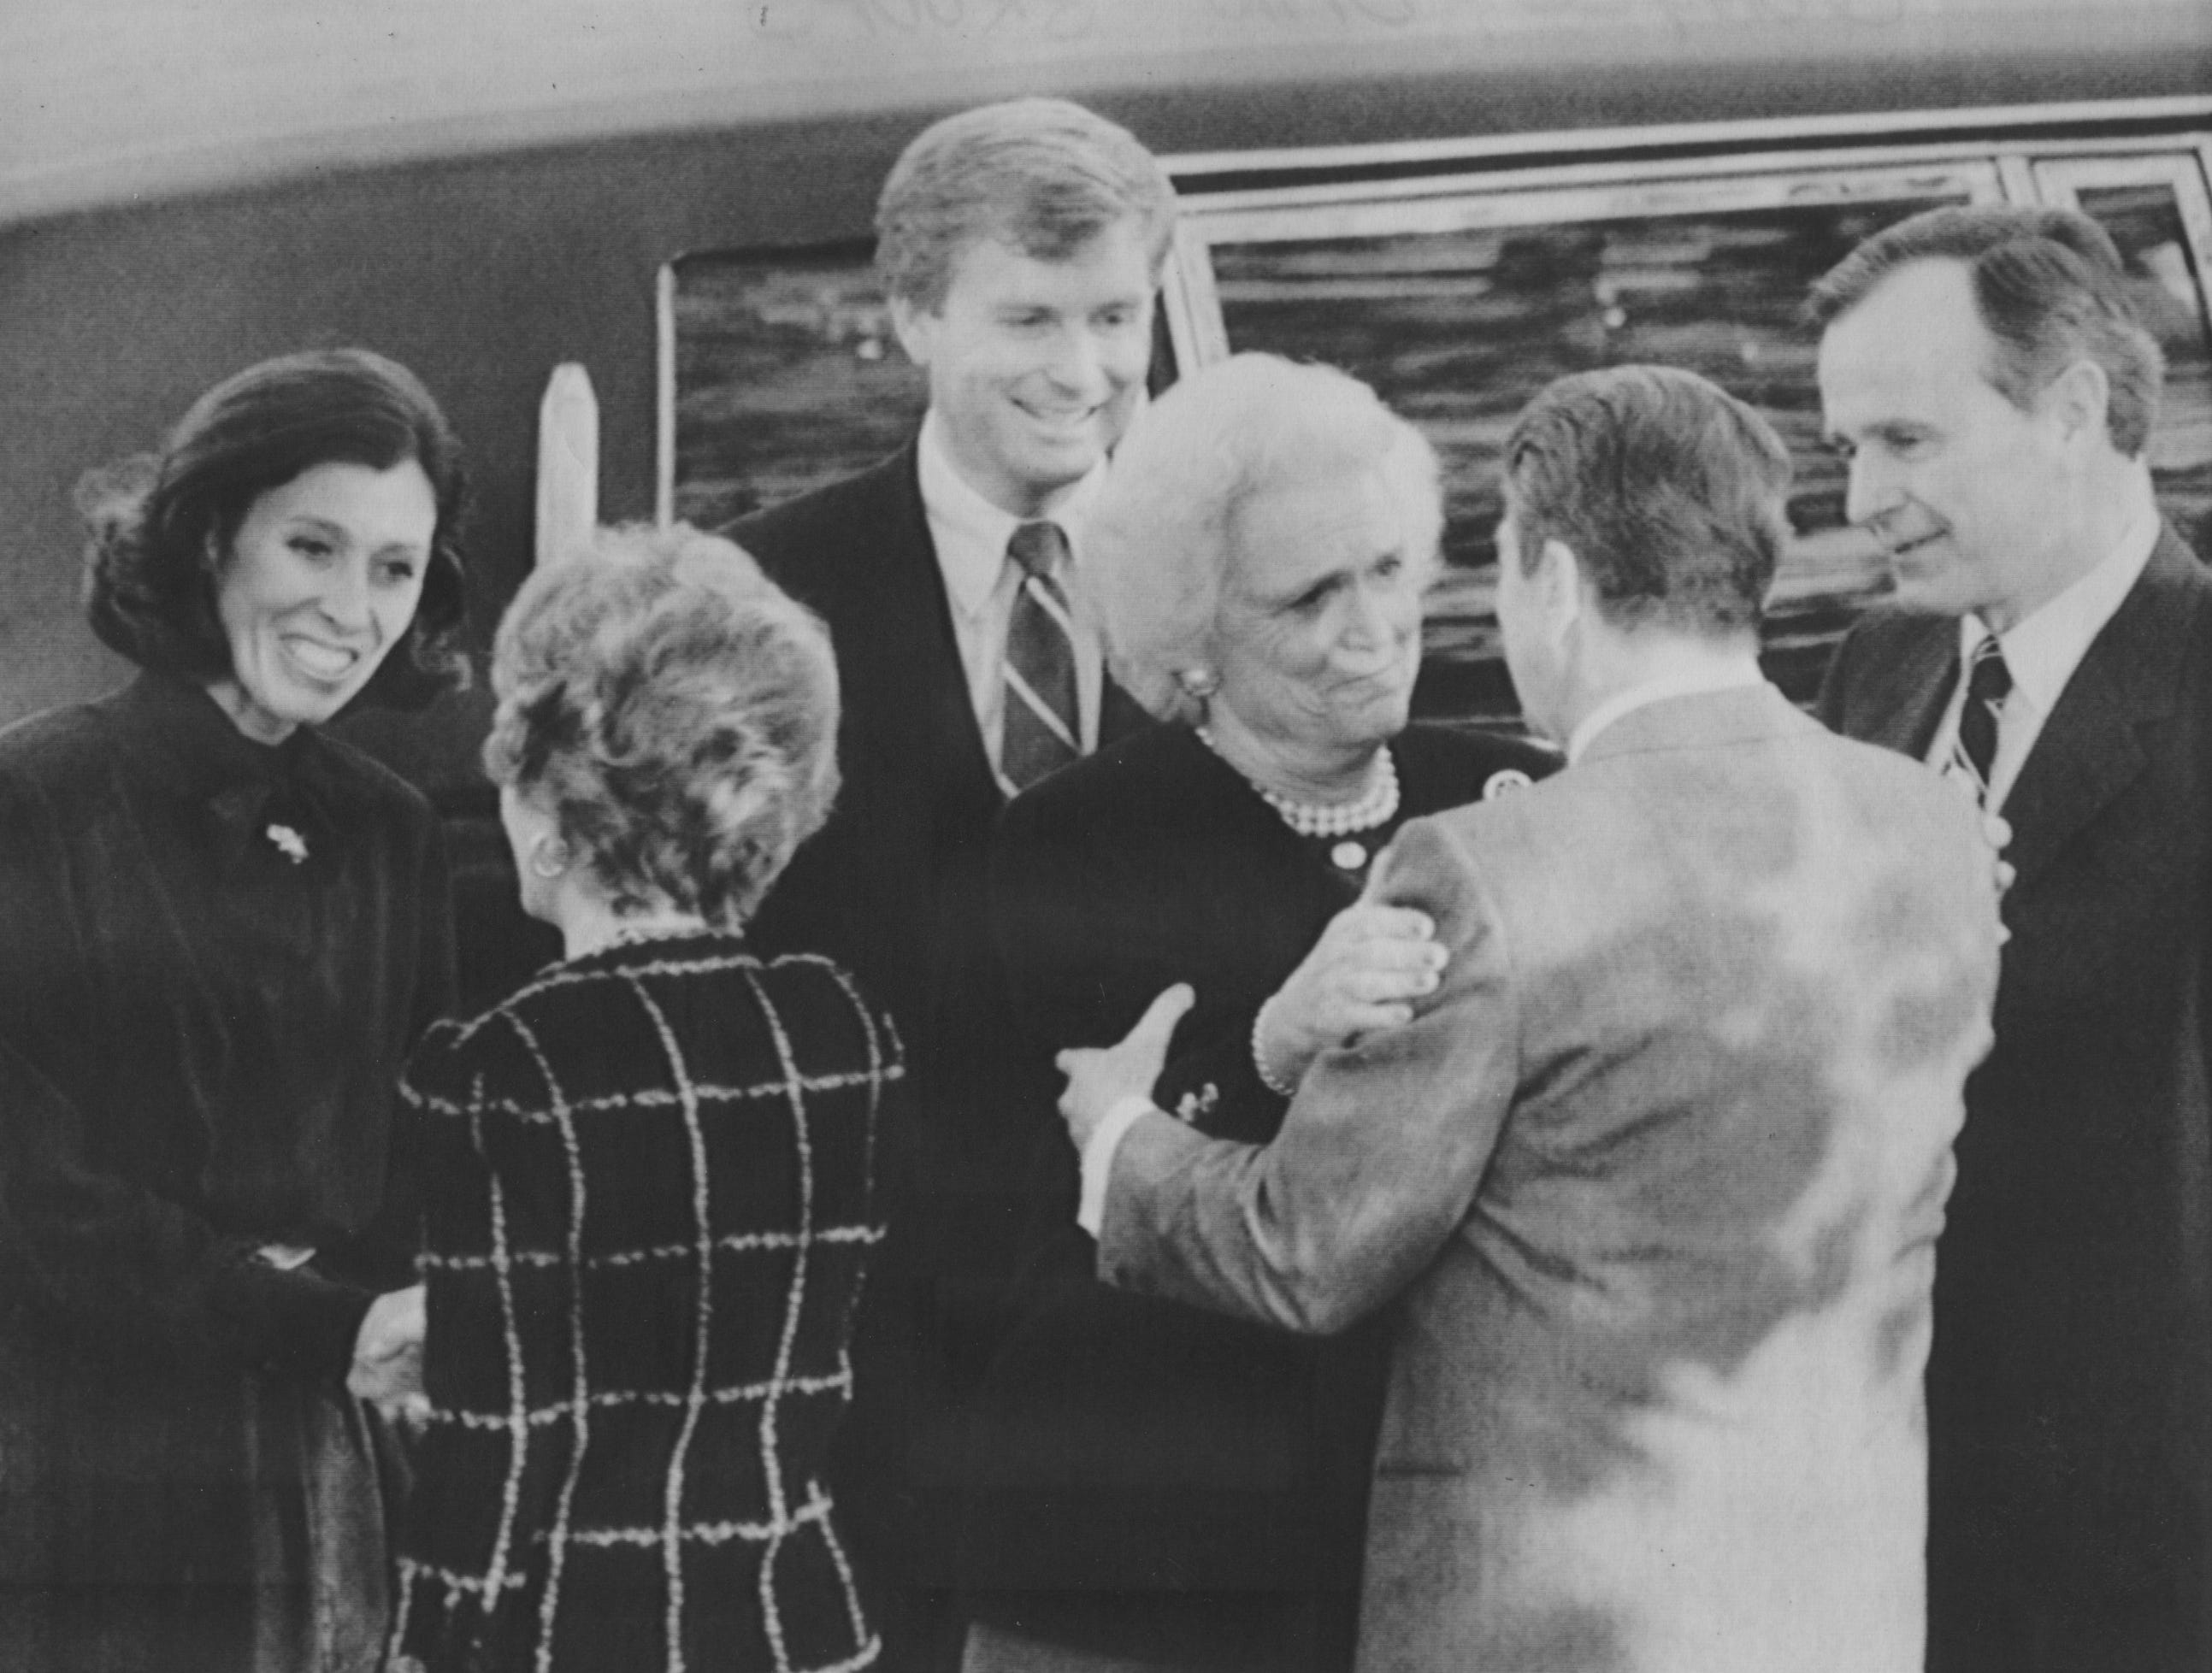 President and Mrs. Reagan greet Mrs. Bush and Mrs. Quayle as President-elect George H.W. Bush and Vice President-elect Dan Quayle look on upon their arrival at the White House on Nov. 9, 1988.